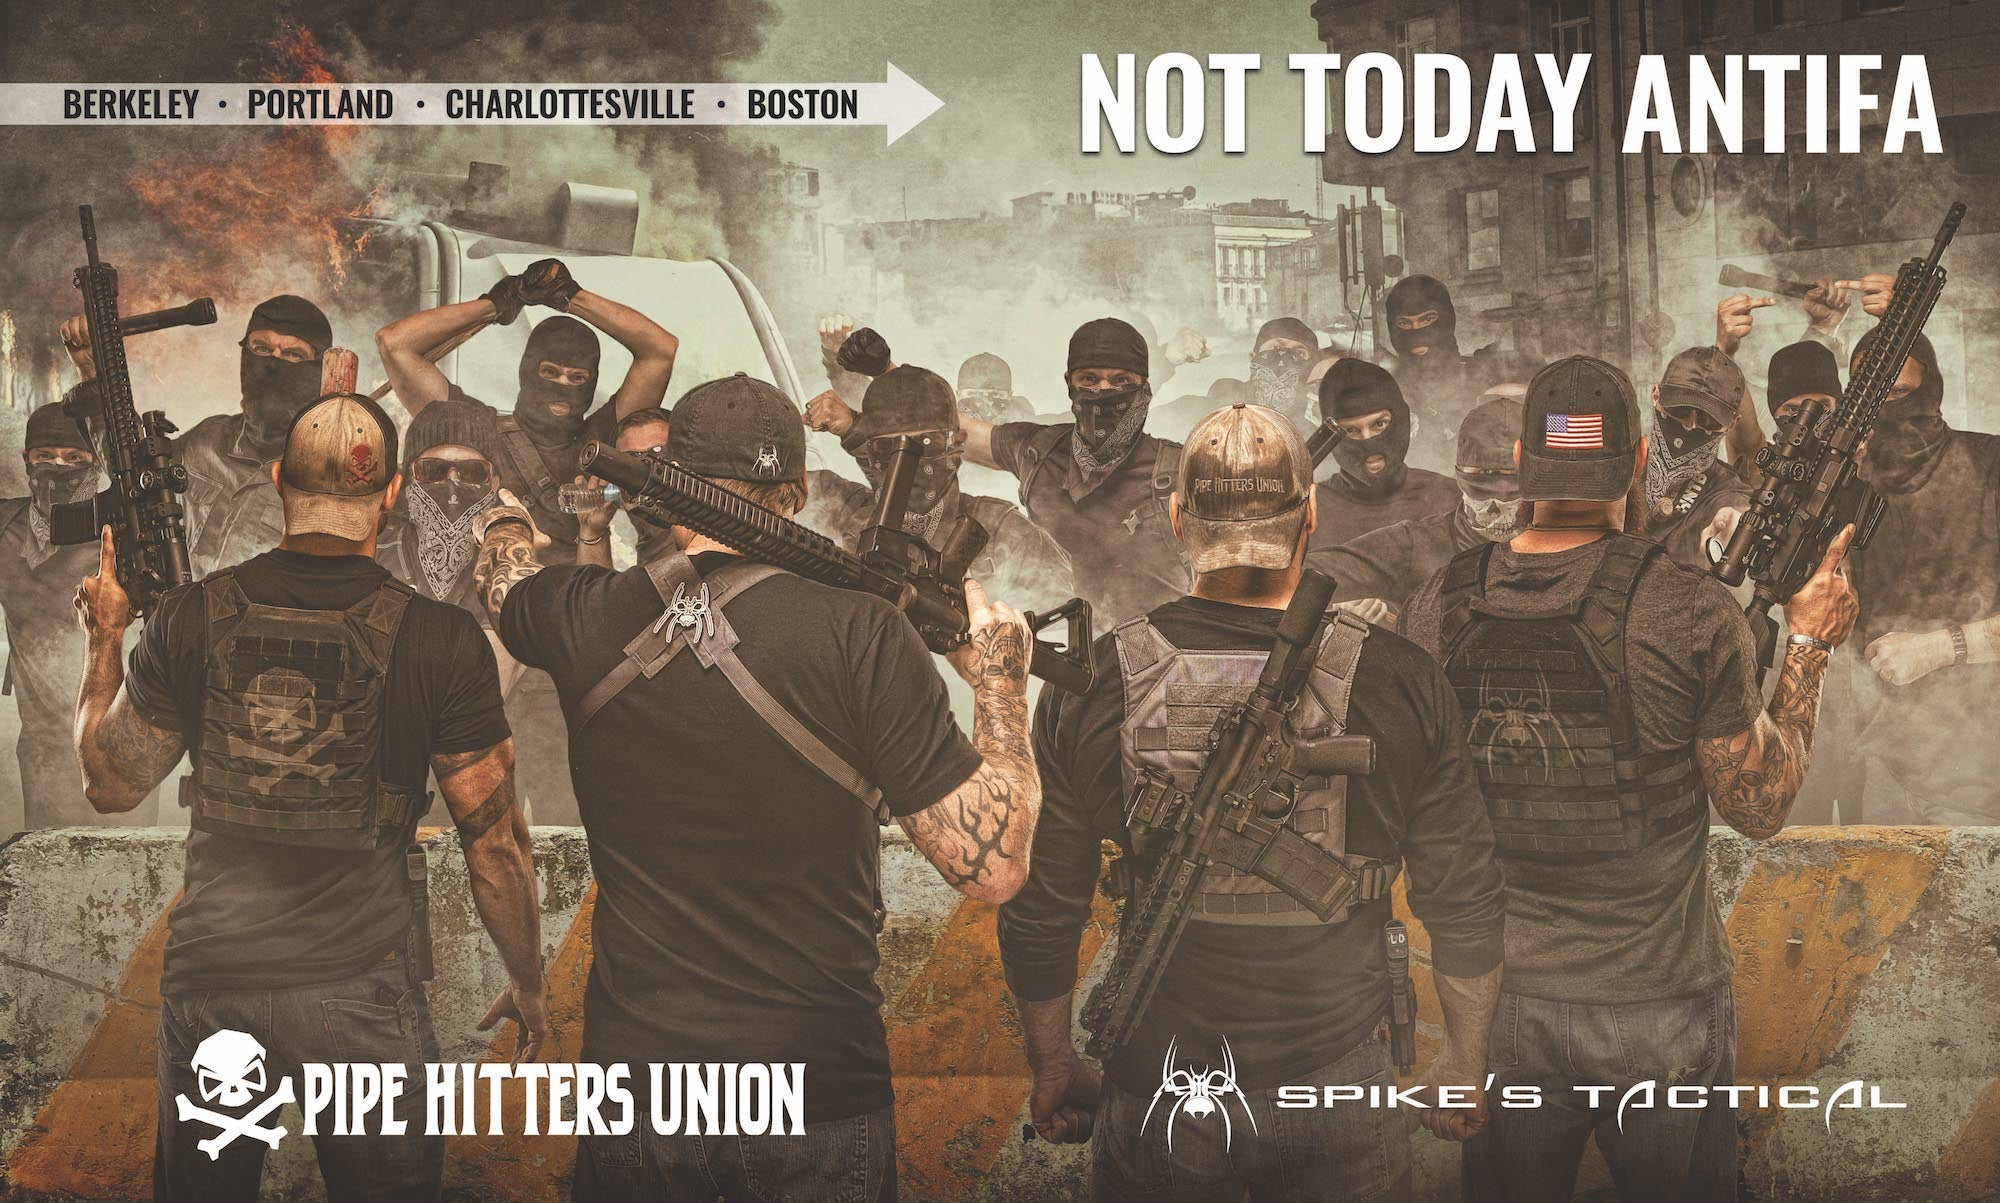 spikes tactical and pipe hitters union pro-american, anti-antifa advertisement